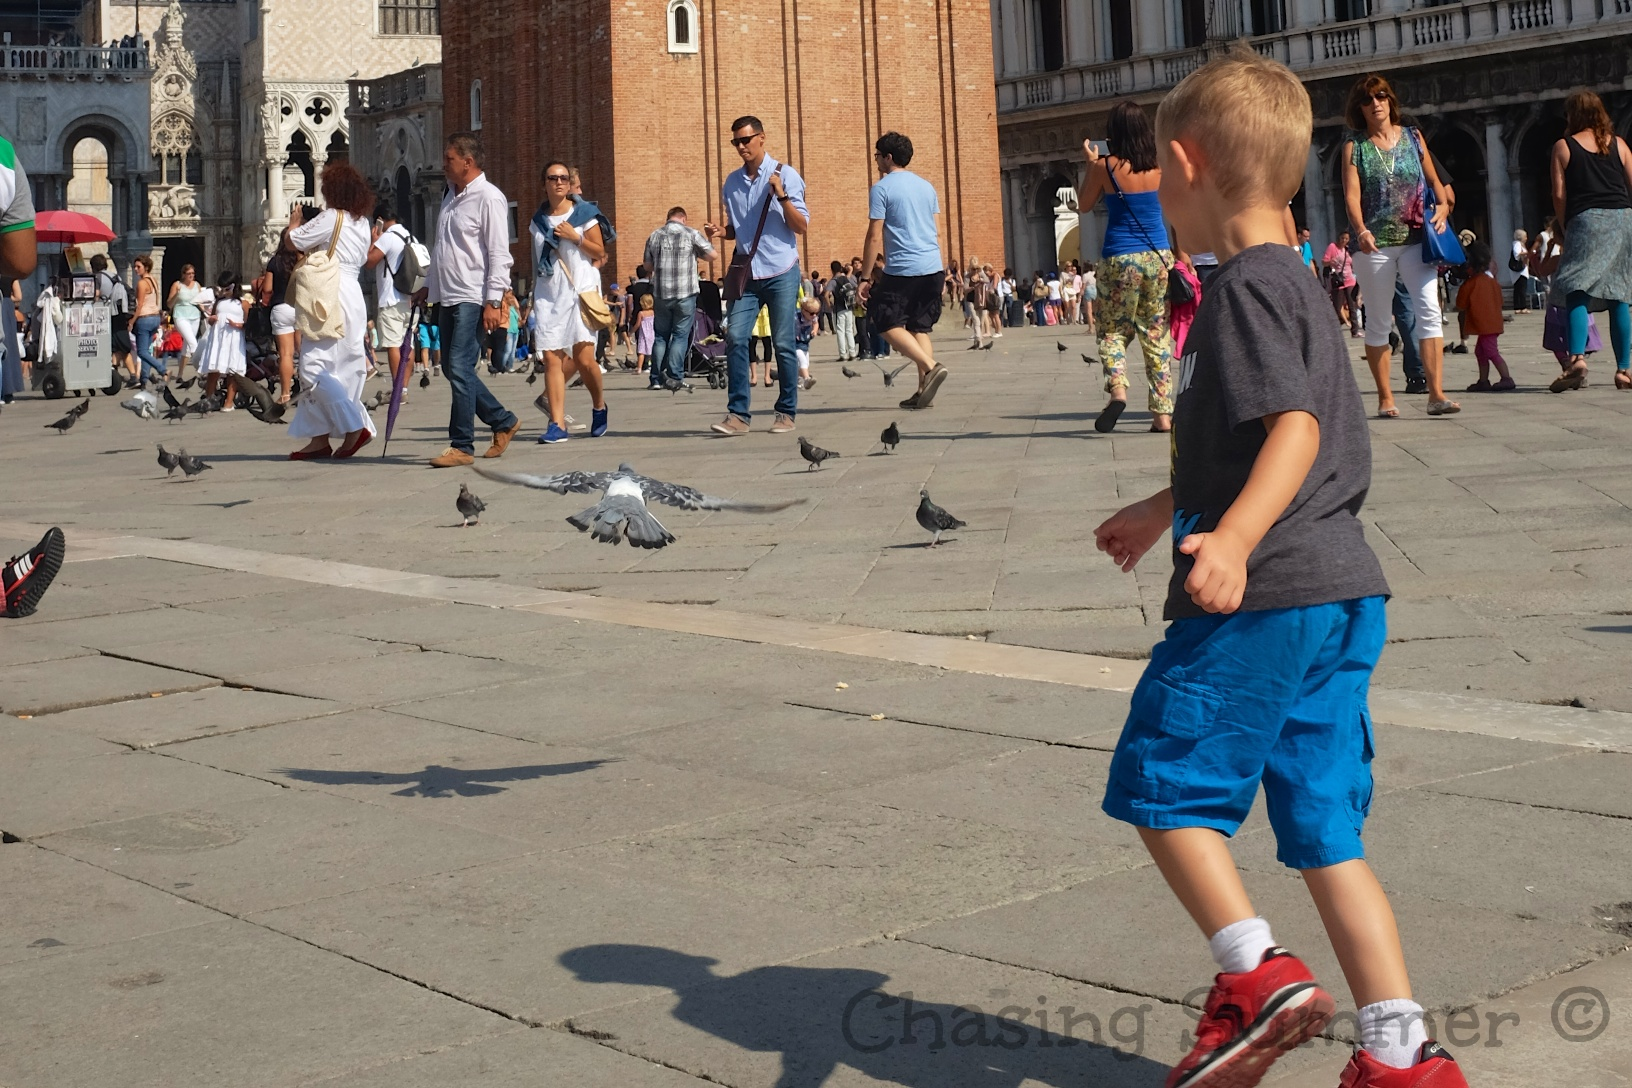 Kian chasing after the pigeons